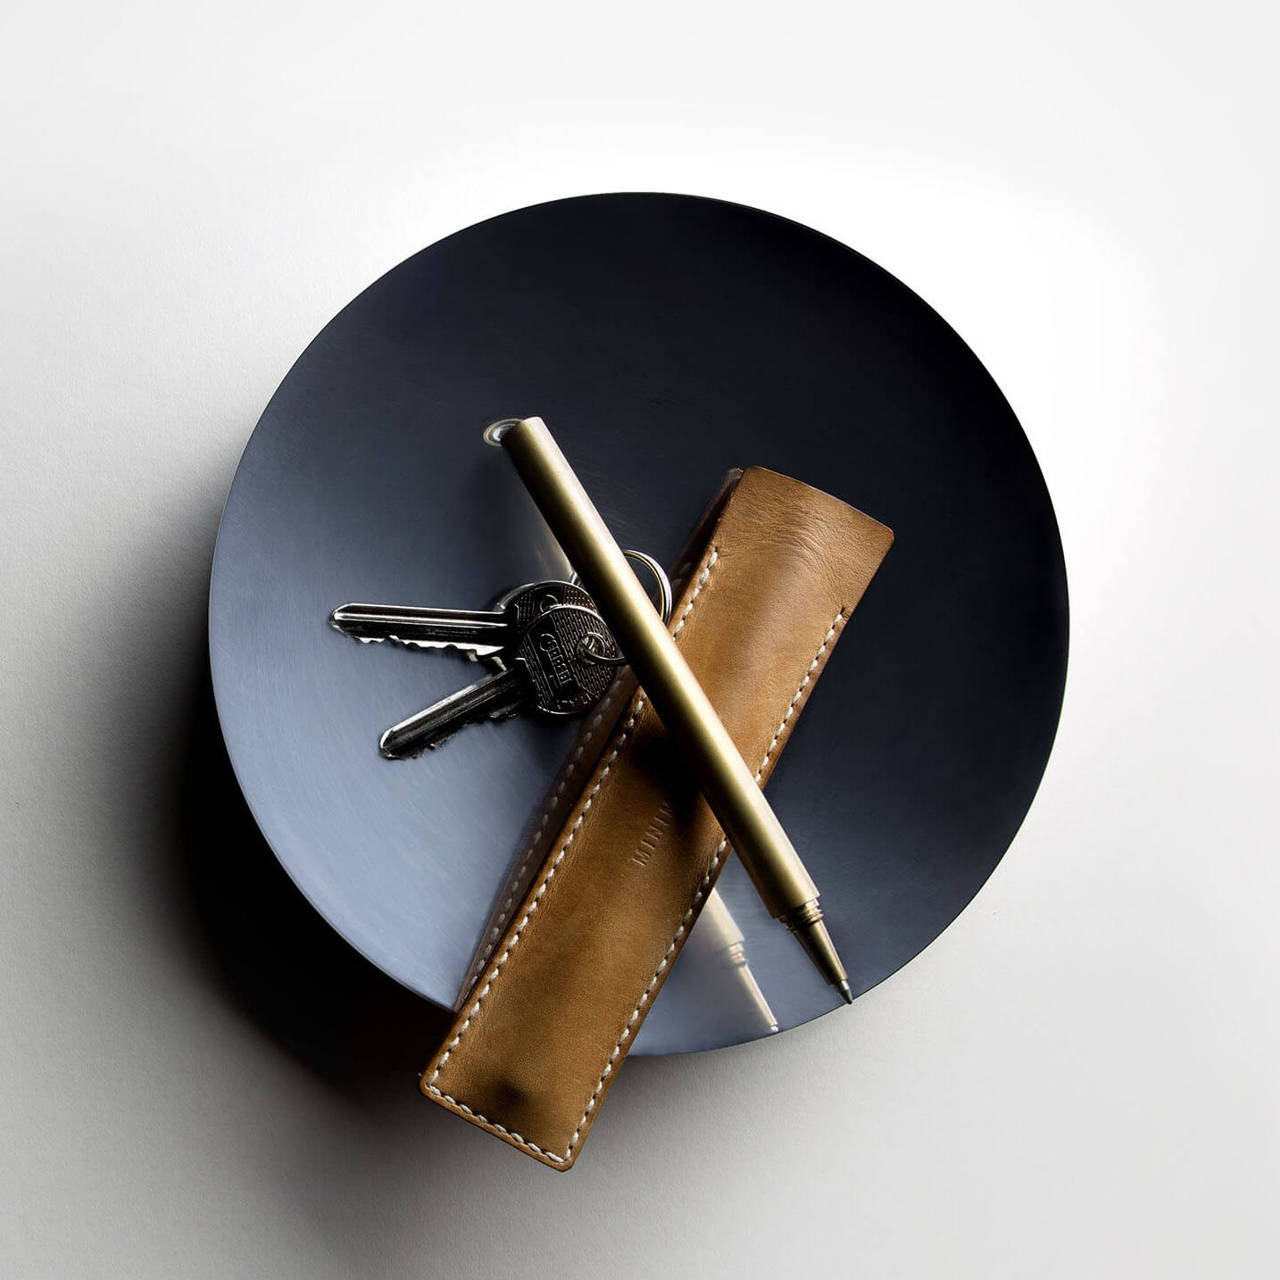 Black Nickel Dish 180 with Travel Pen and Leather Sleeve